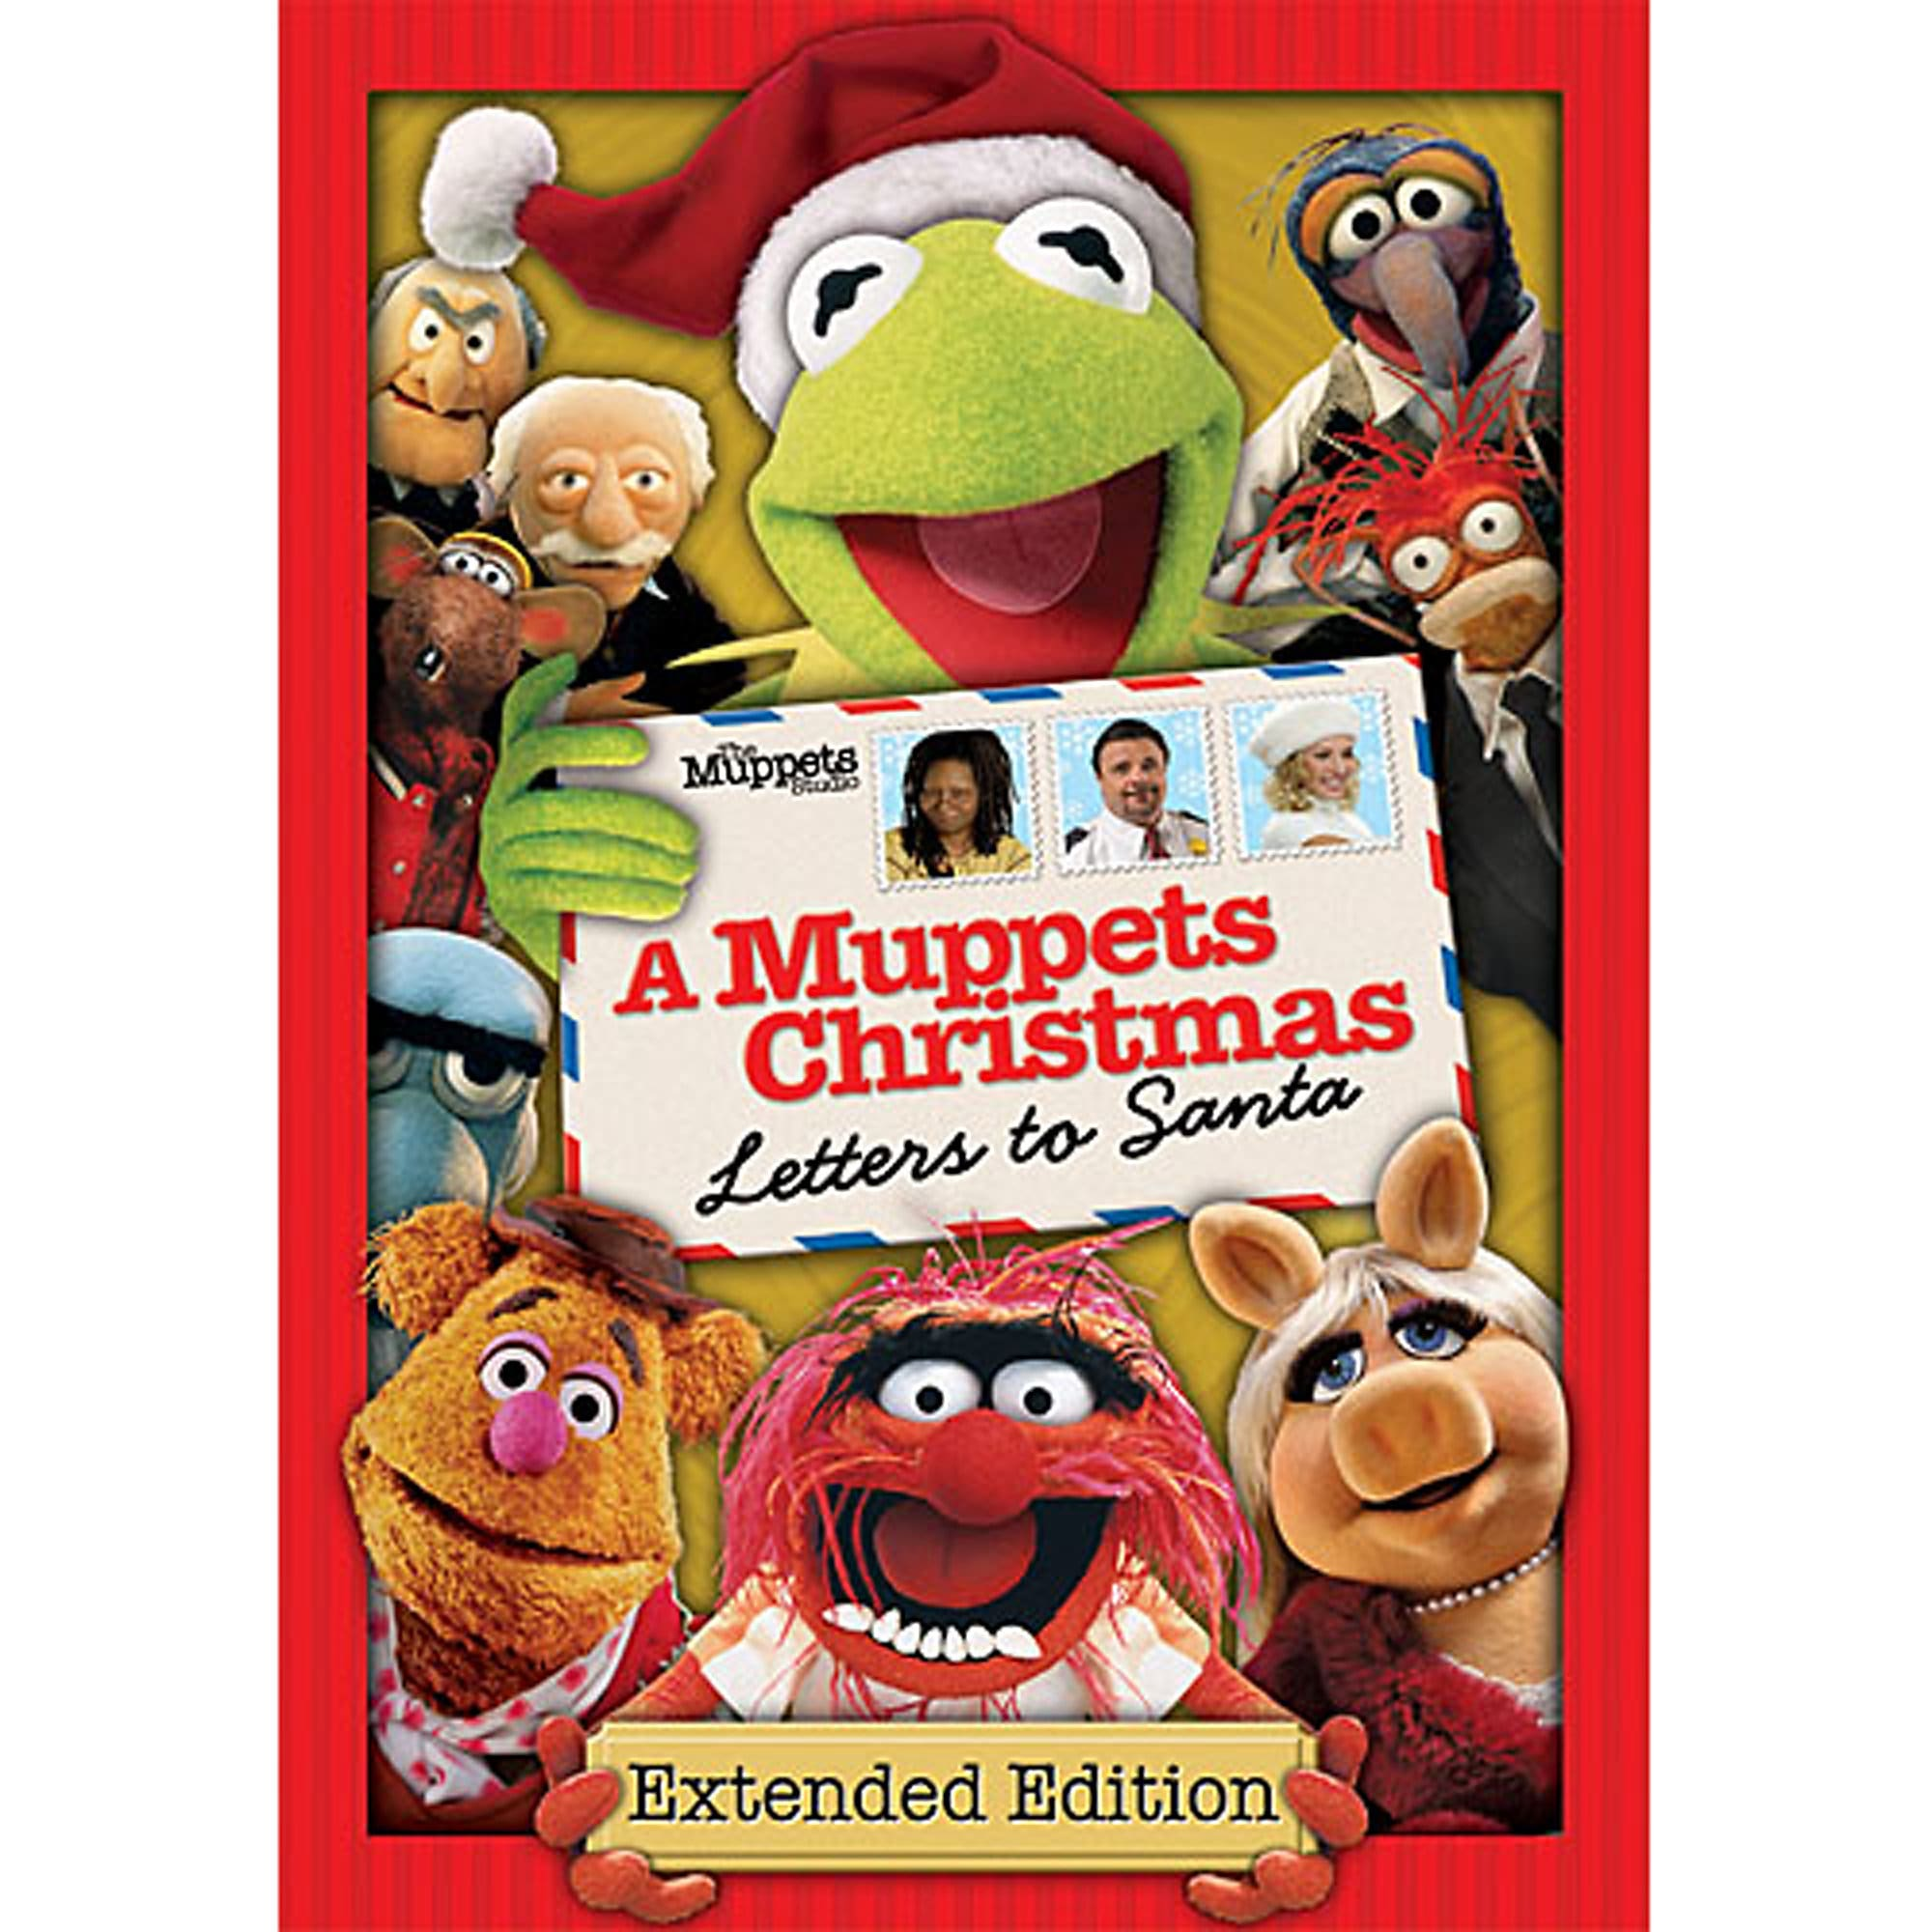 A Muppets Christmas: Letters to Santa DVD | shopDisney